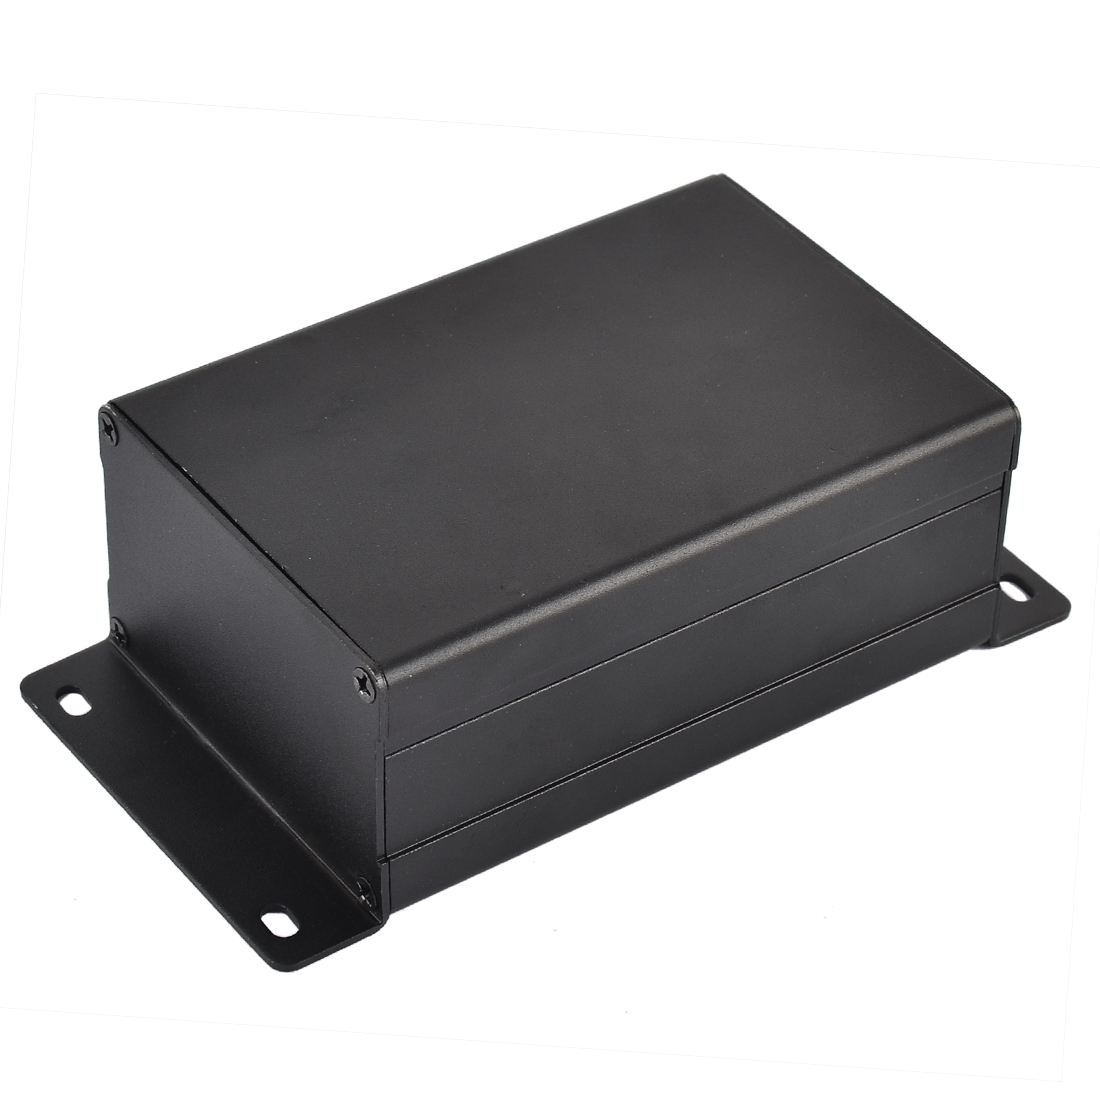 Aluminum Panel Mount Project Enclosure PCB Case DIY Connecting Junction Box